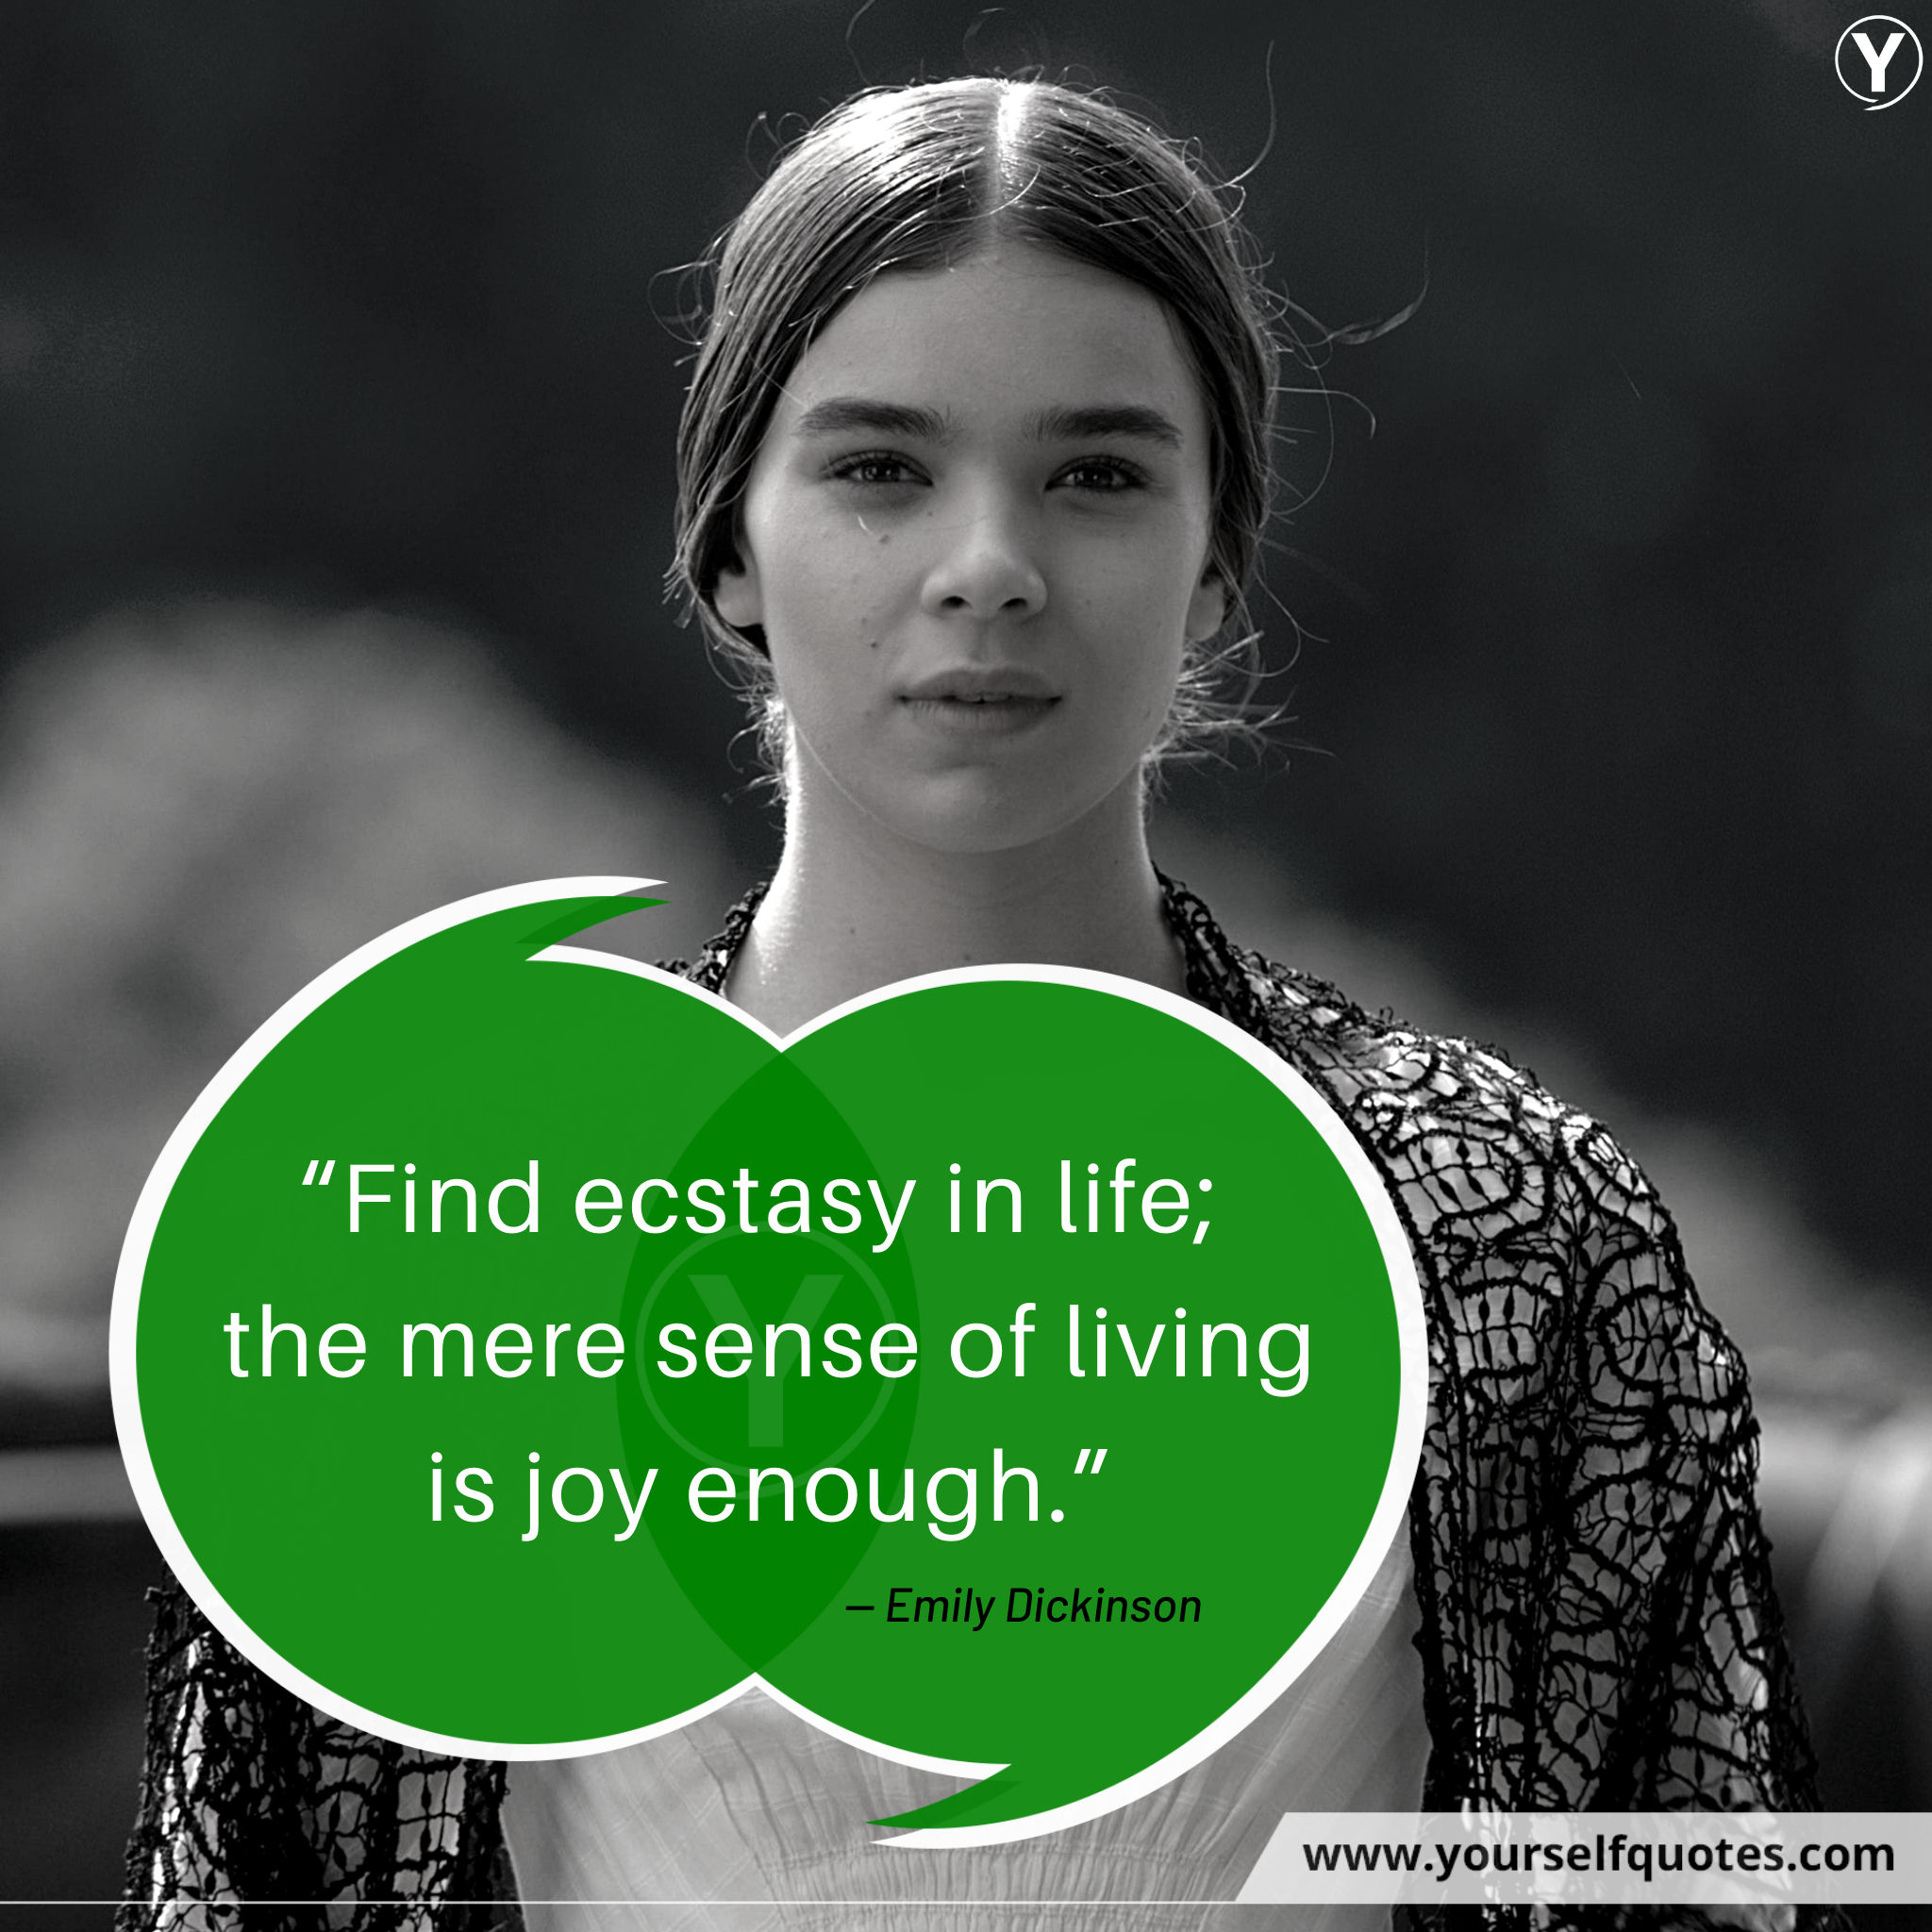 Quotes-on-Life-by-Emily-Dickinson